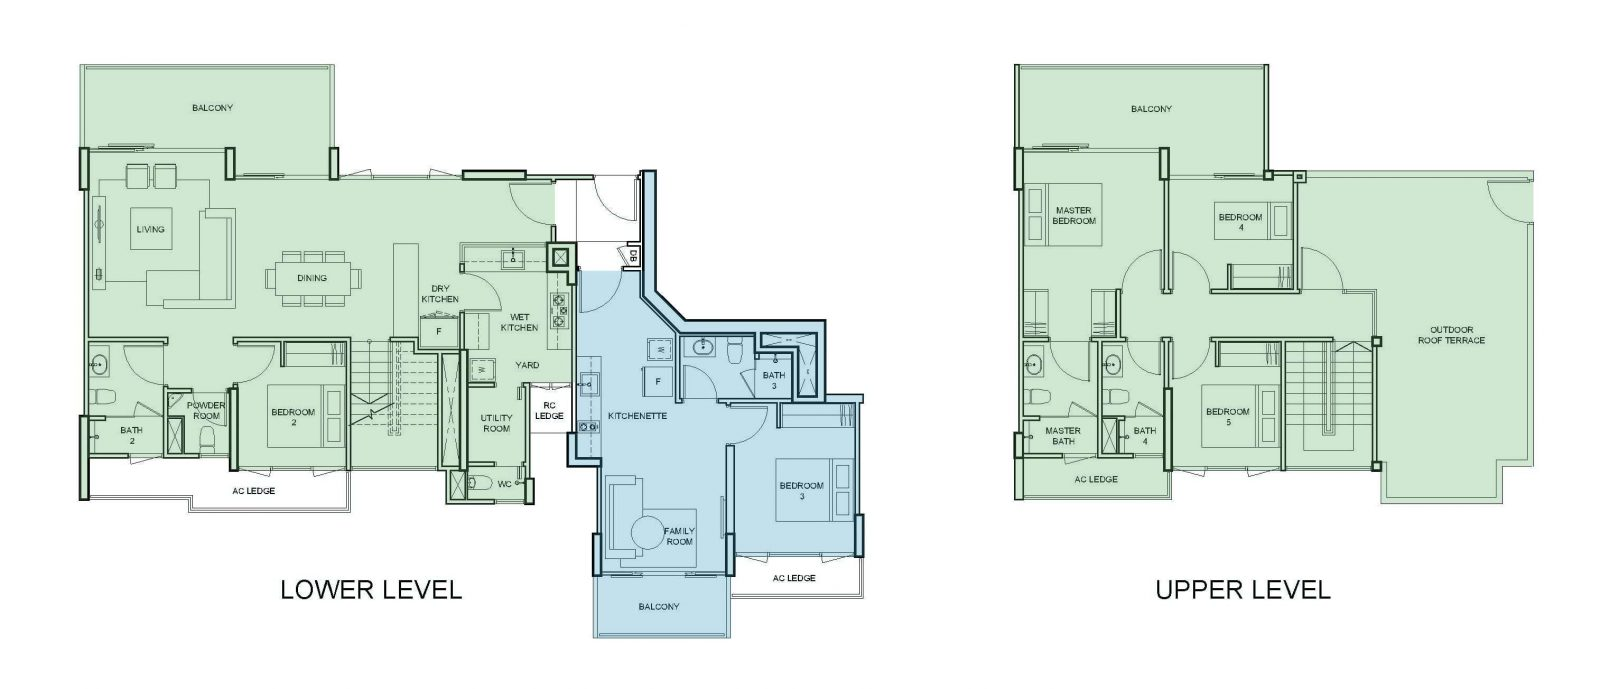 5 bedroom dual key condo unit floorplan